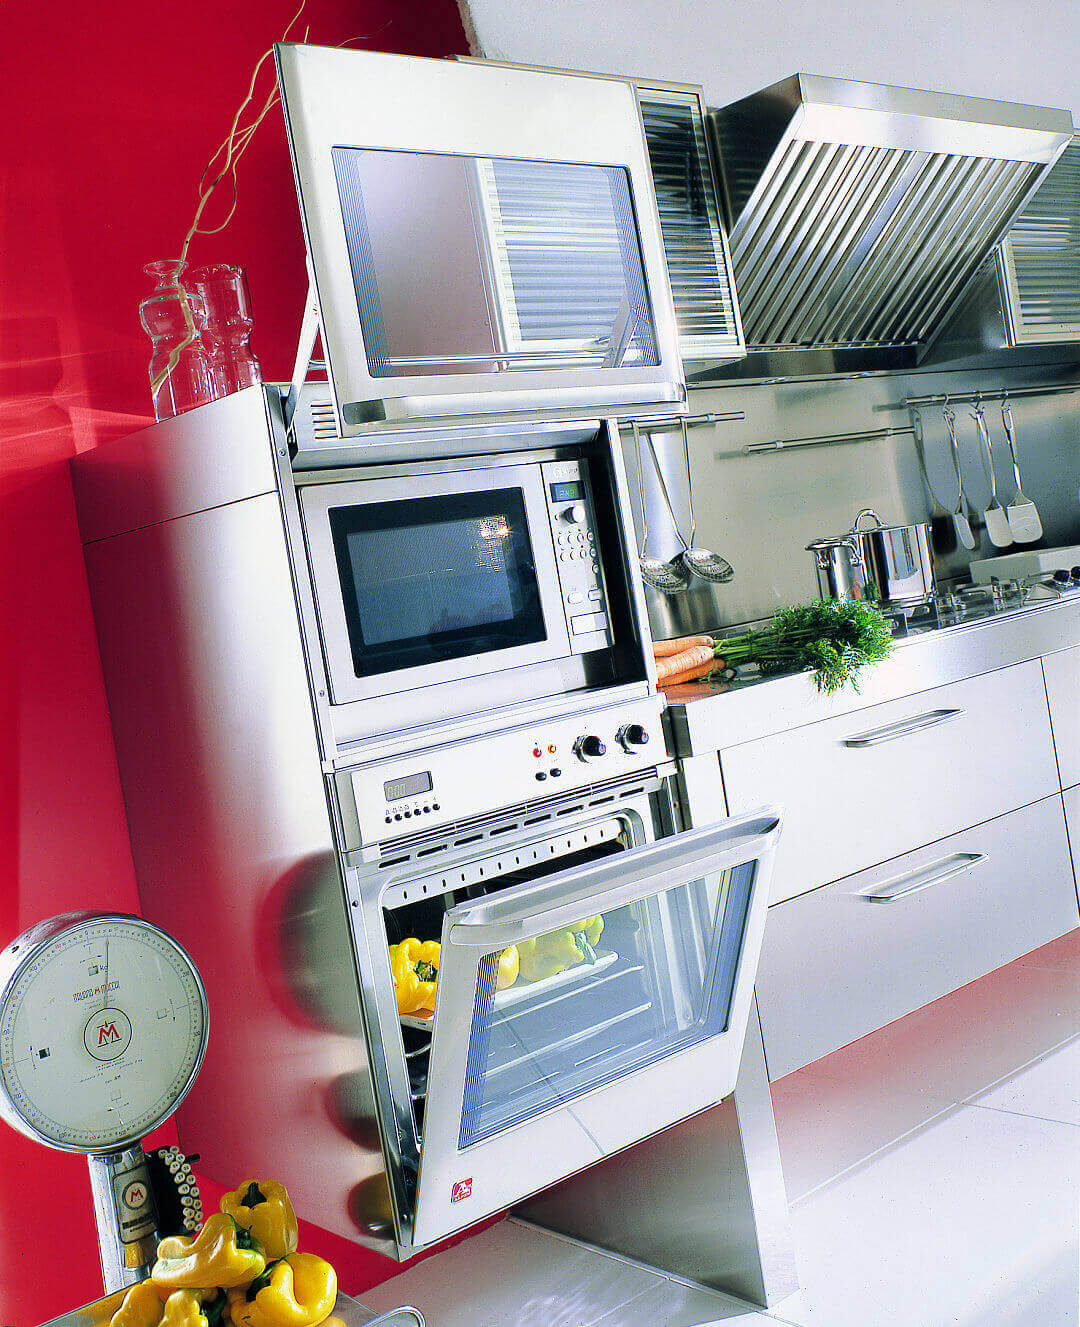 Arca Cucine Italy - Home Kitchen Stainless Steel - Spring - Ovens column